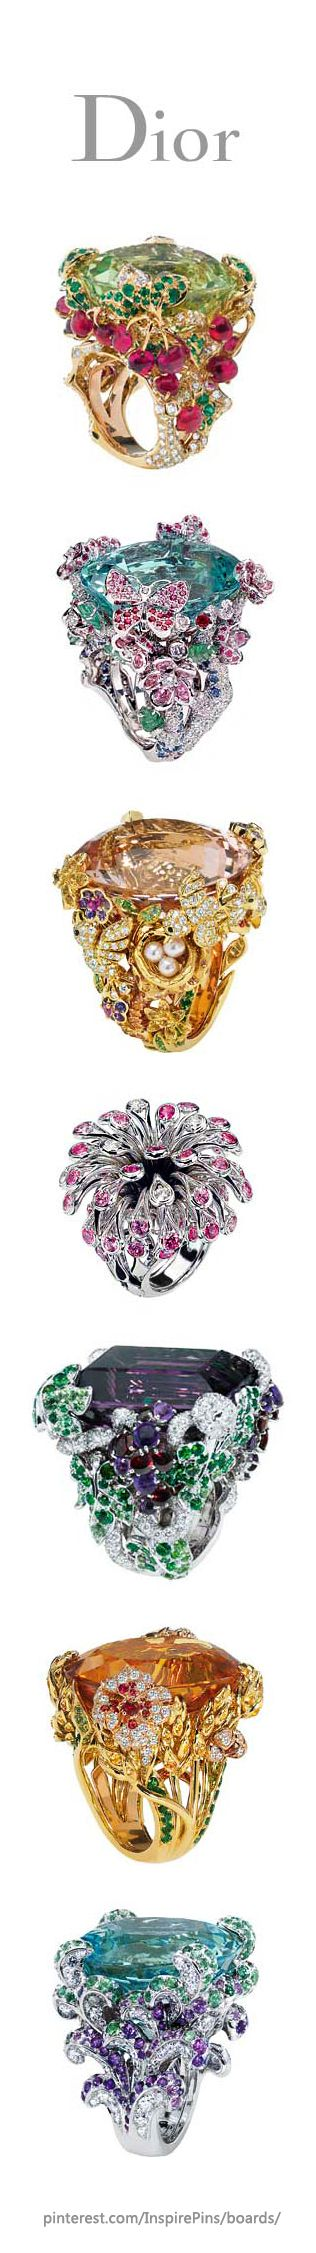 Rings by Victoire de Castellane for Dior.